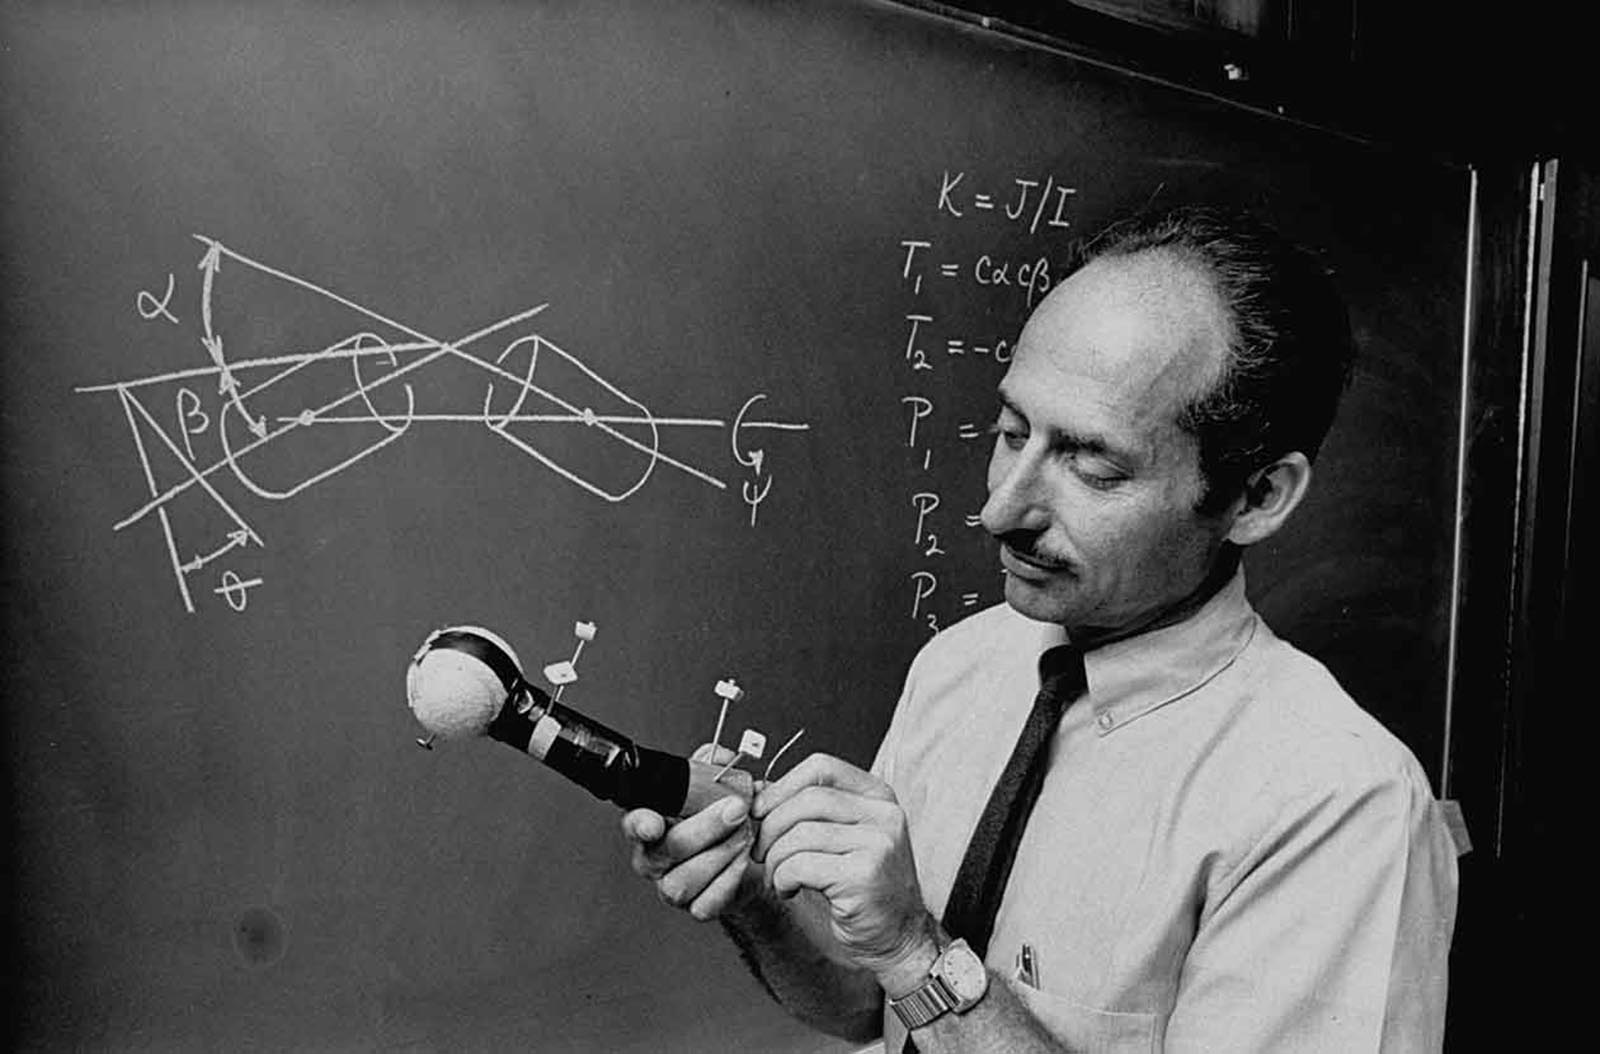 Professor Thomas R. Kane demonstrating a formula which explains how a cat's movements can be imitated by astronauts in space.